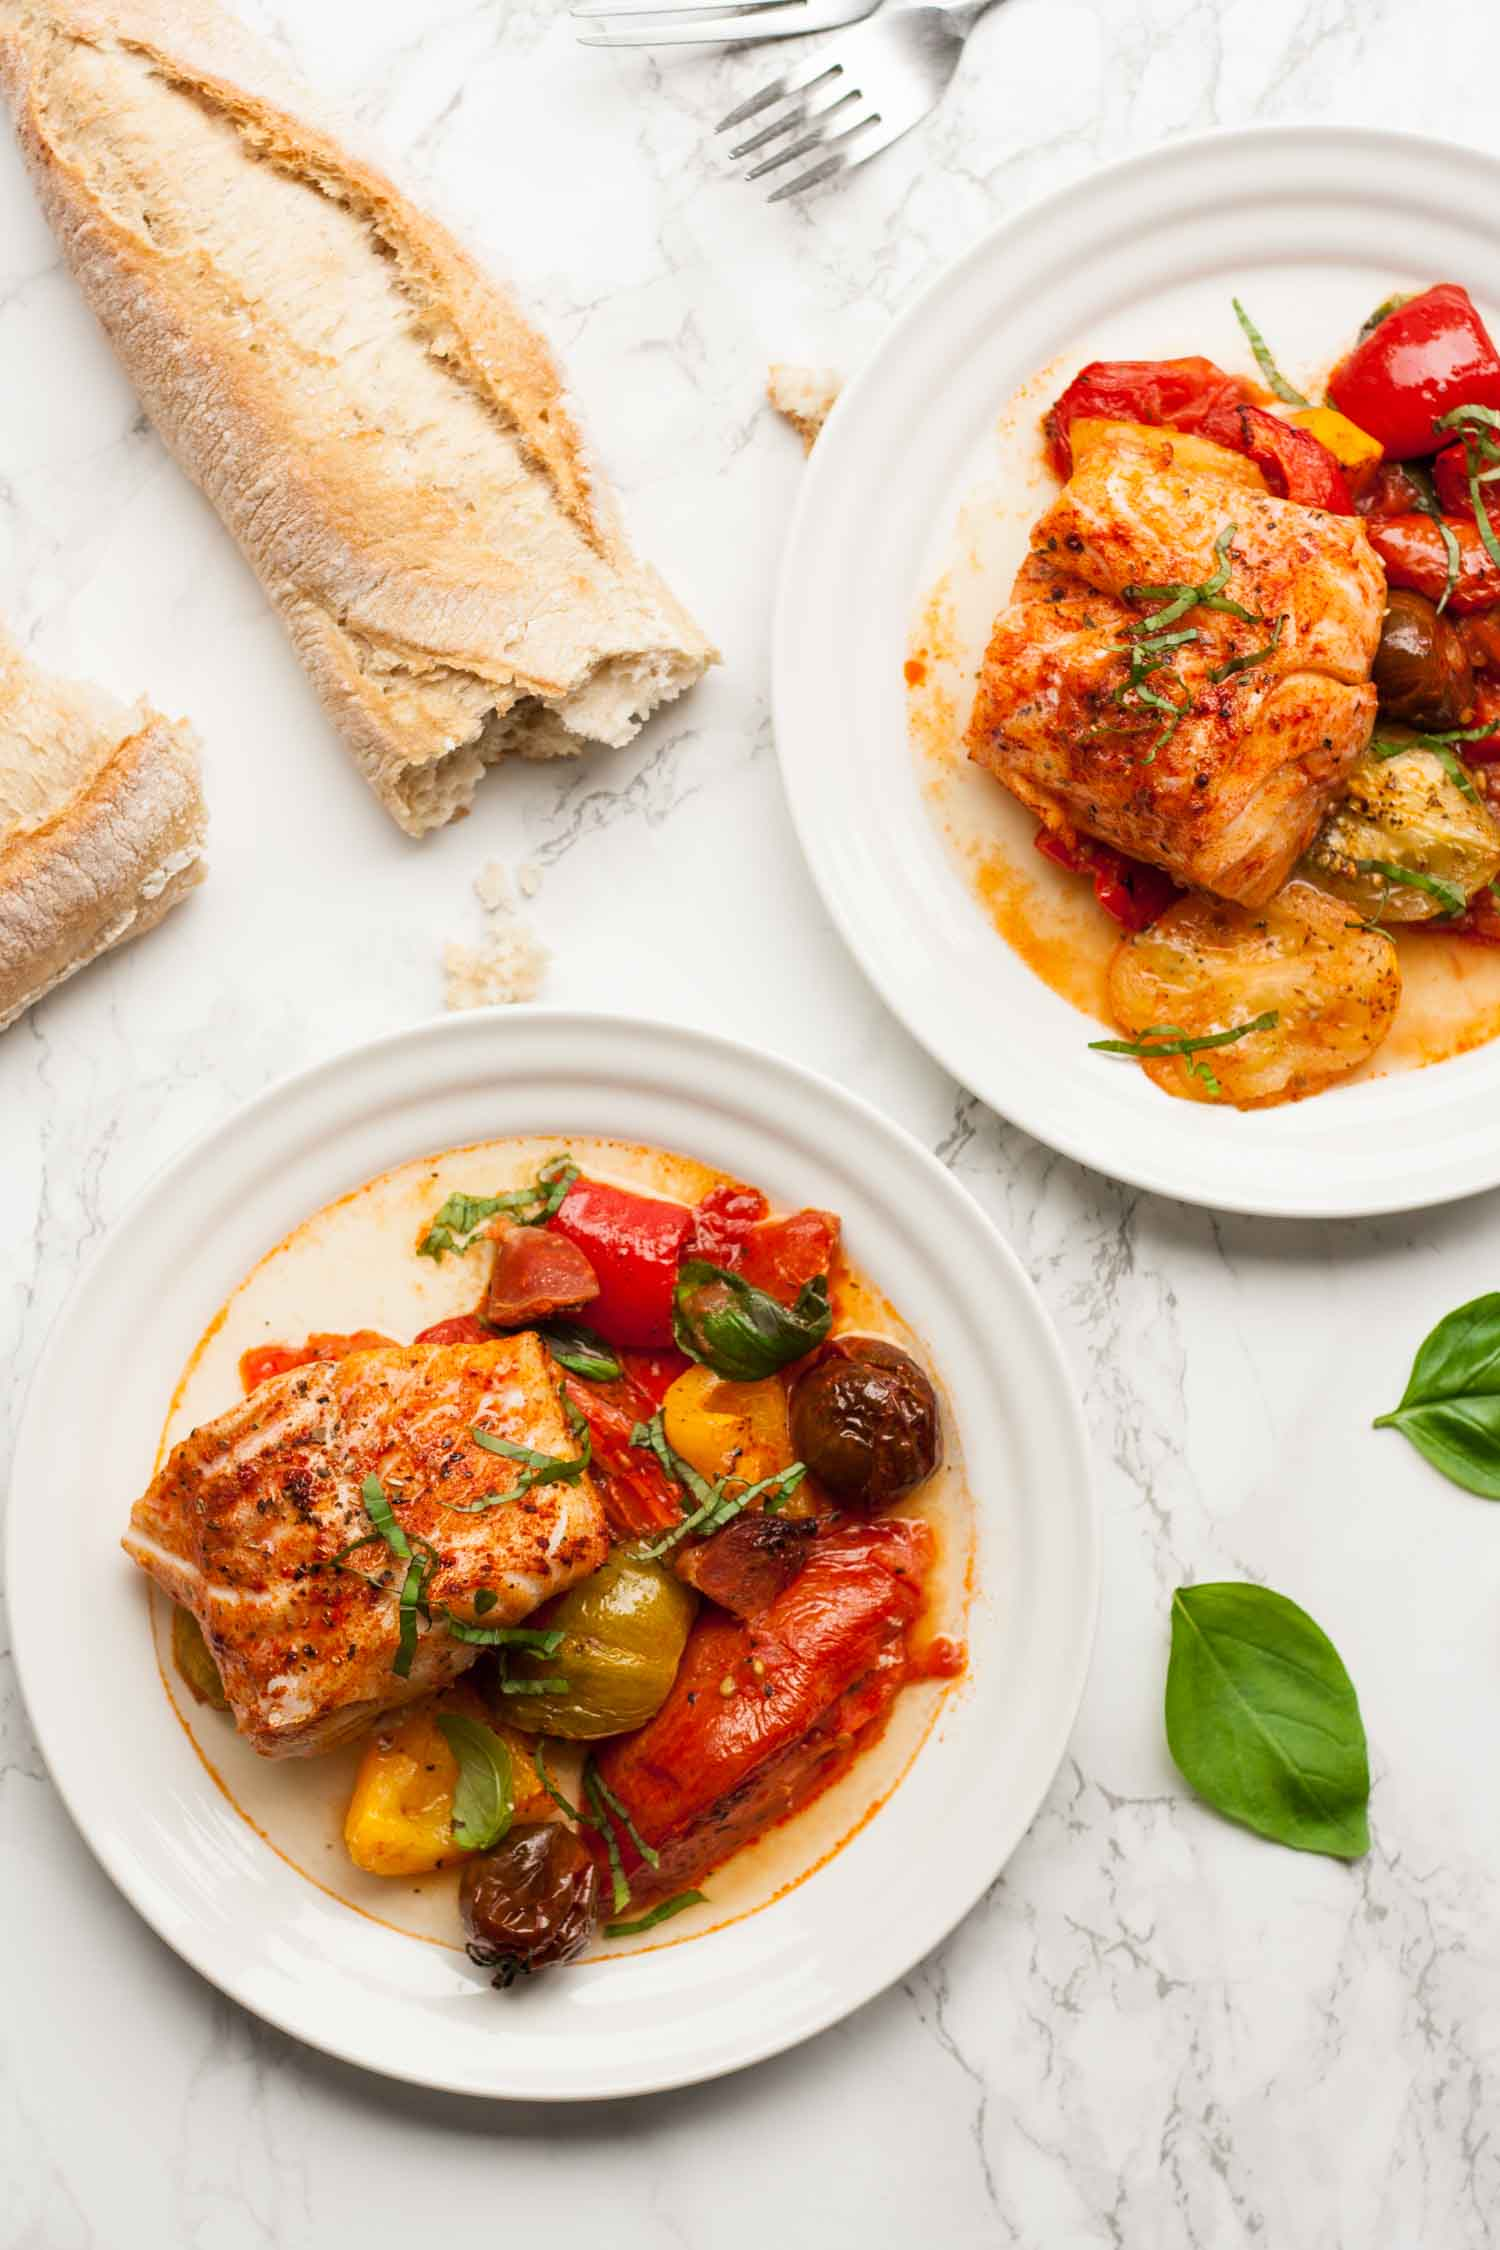 Roasted Heirloom Tomatoes with Cod and Chorizo - this simple summer traybake is full of seasonal produce and tastes amazing! | eatloveeats.com